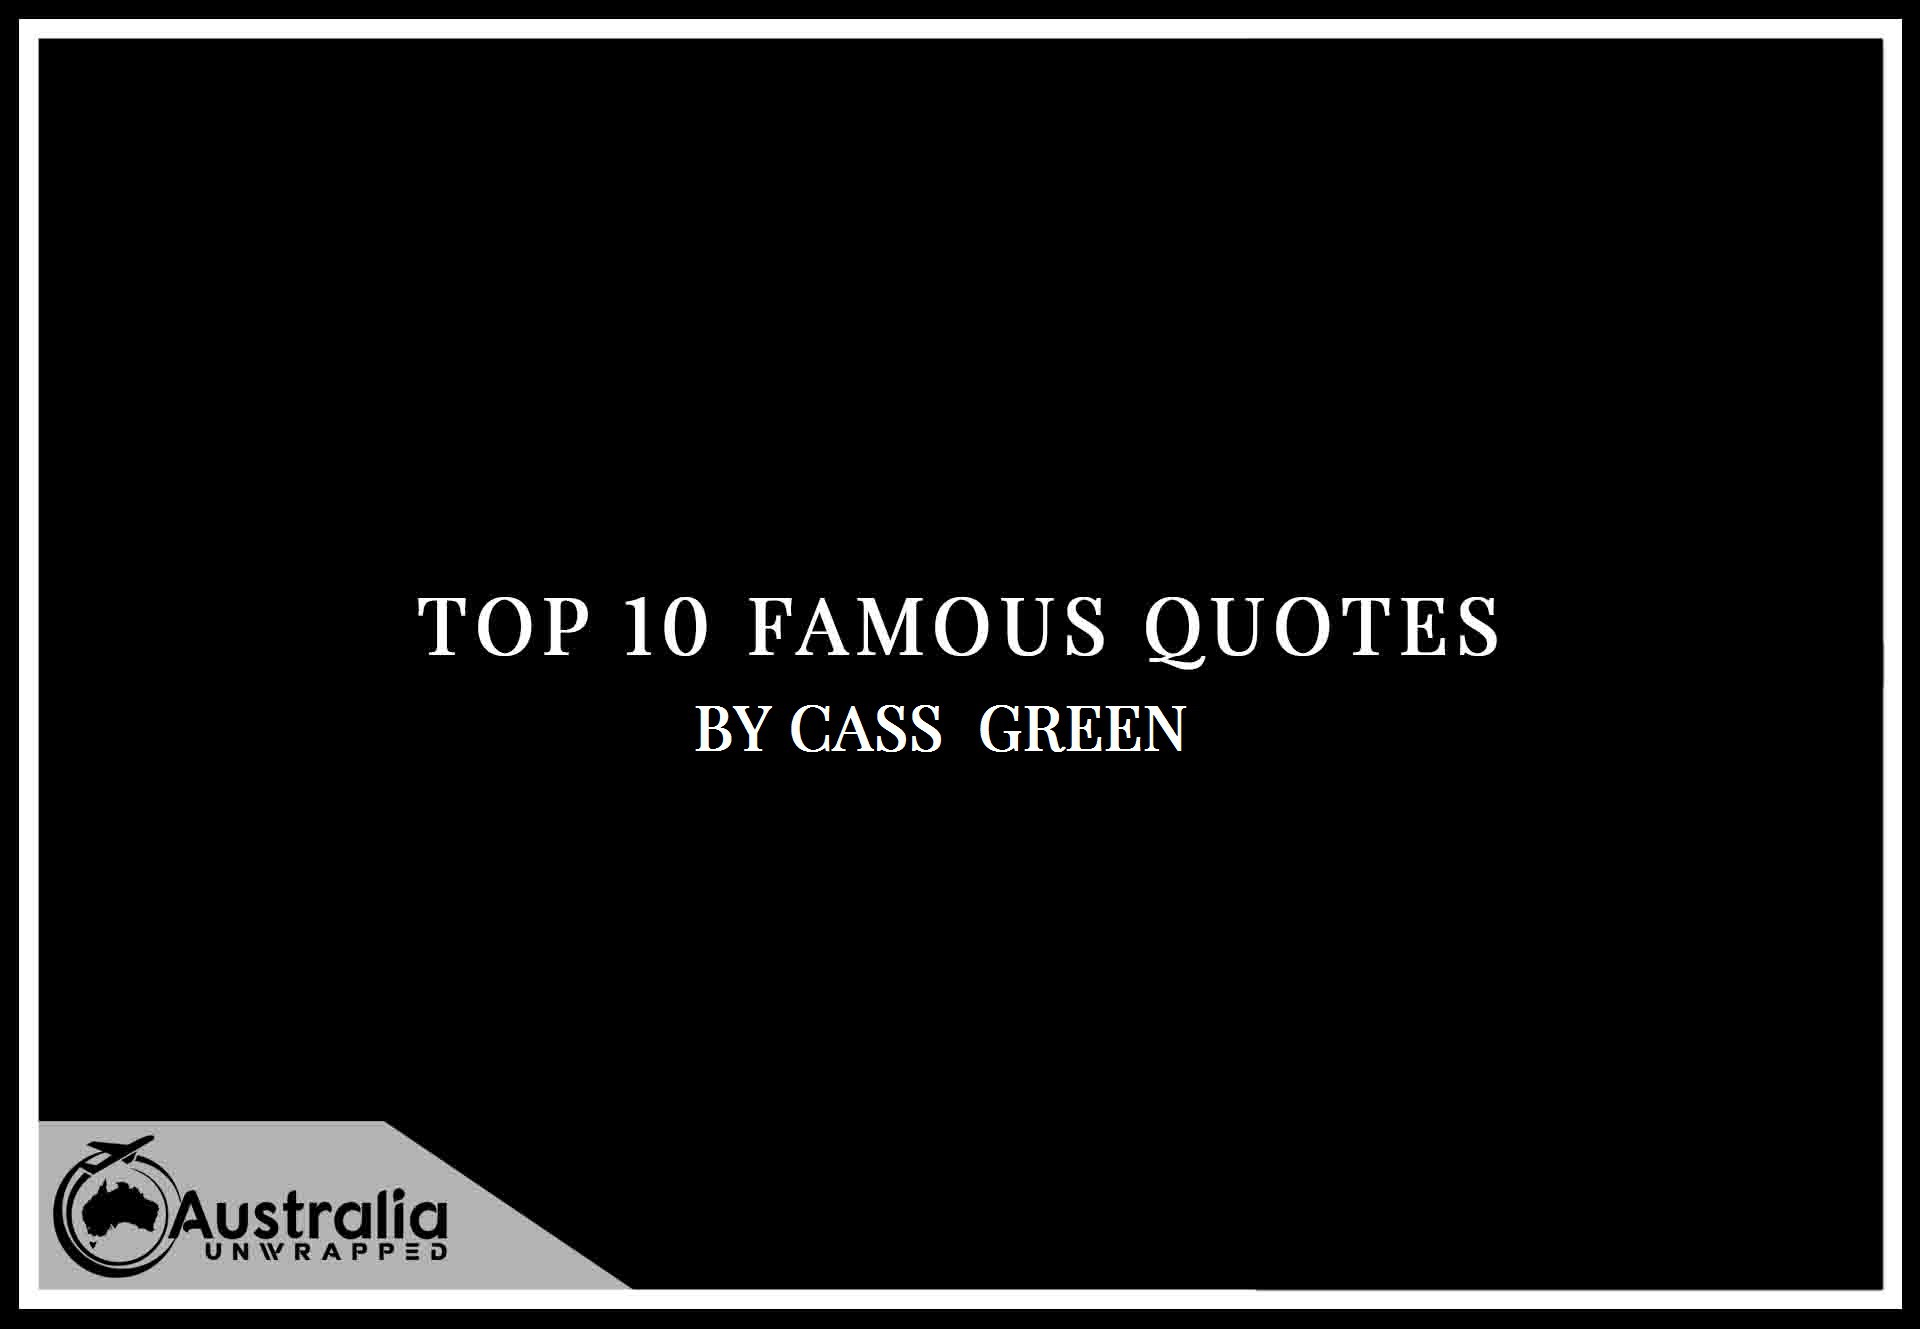 Cass Green's Top 10 Popular and Famous Quotes